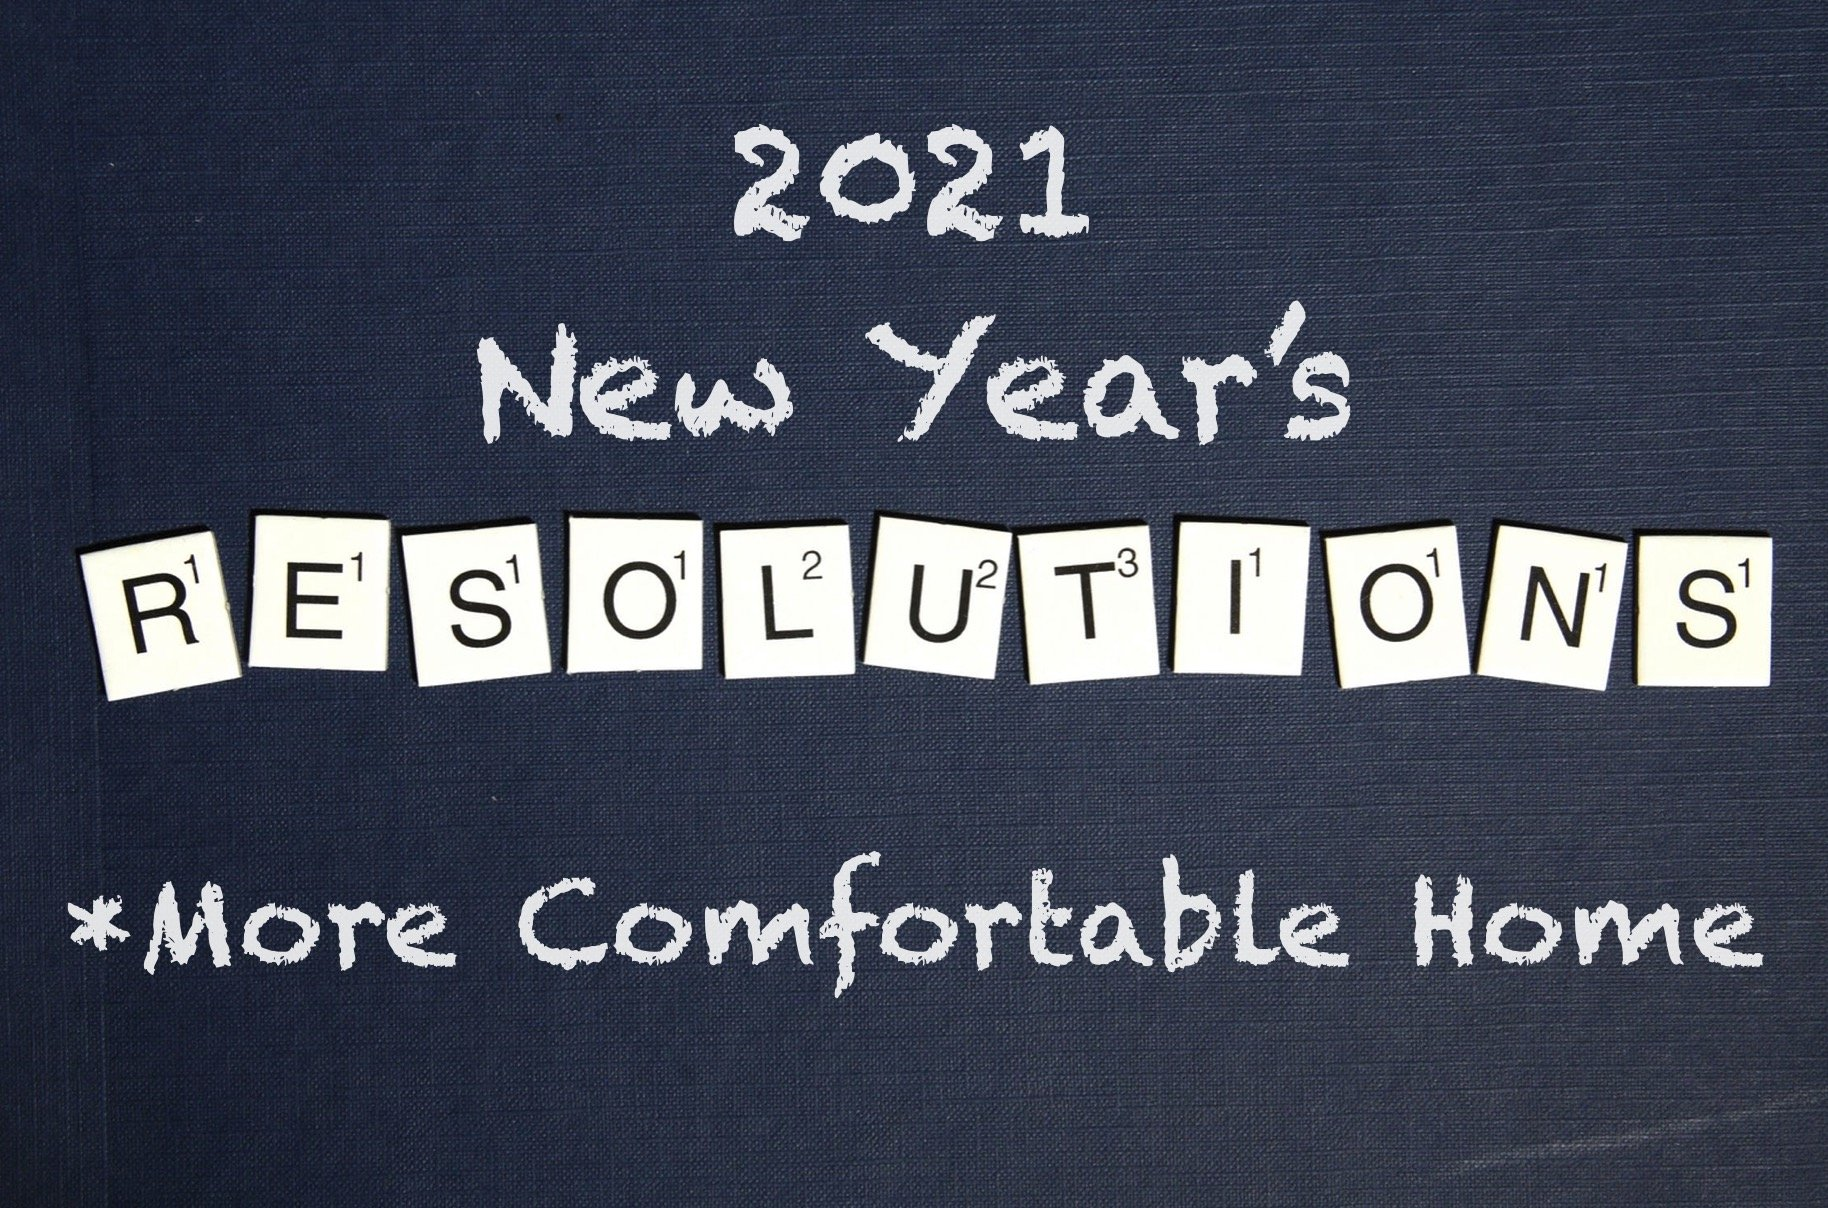 Resolve to Have a More Comfortable and Energy Efficient Home in 2021 - Home Window Tint in New Orleans, Louisiana